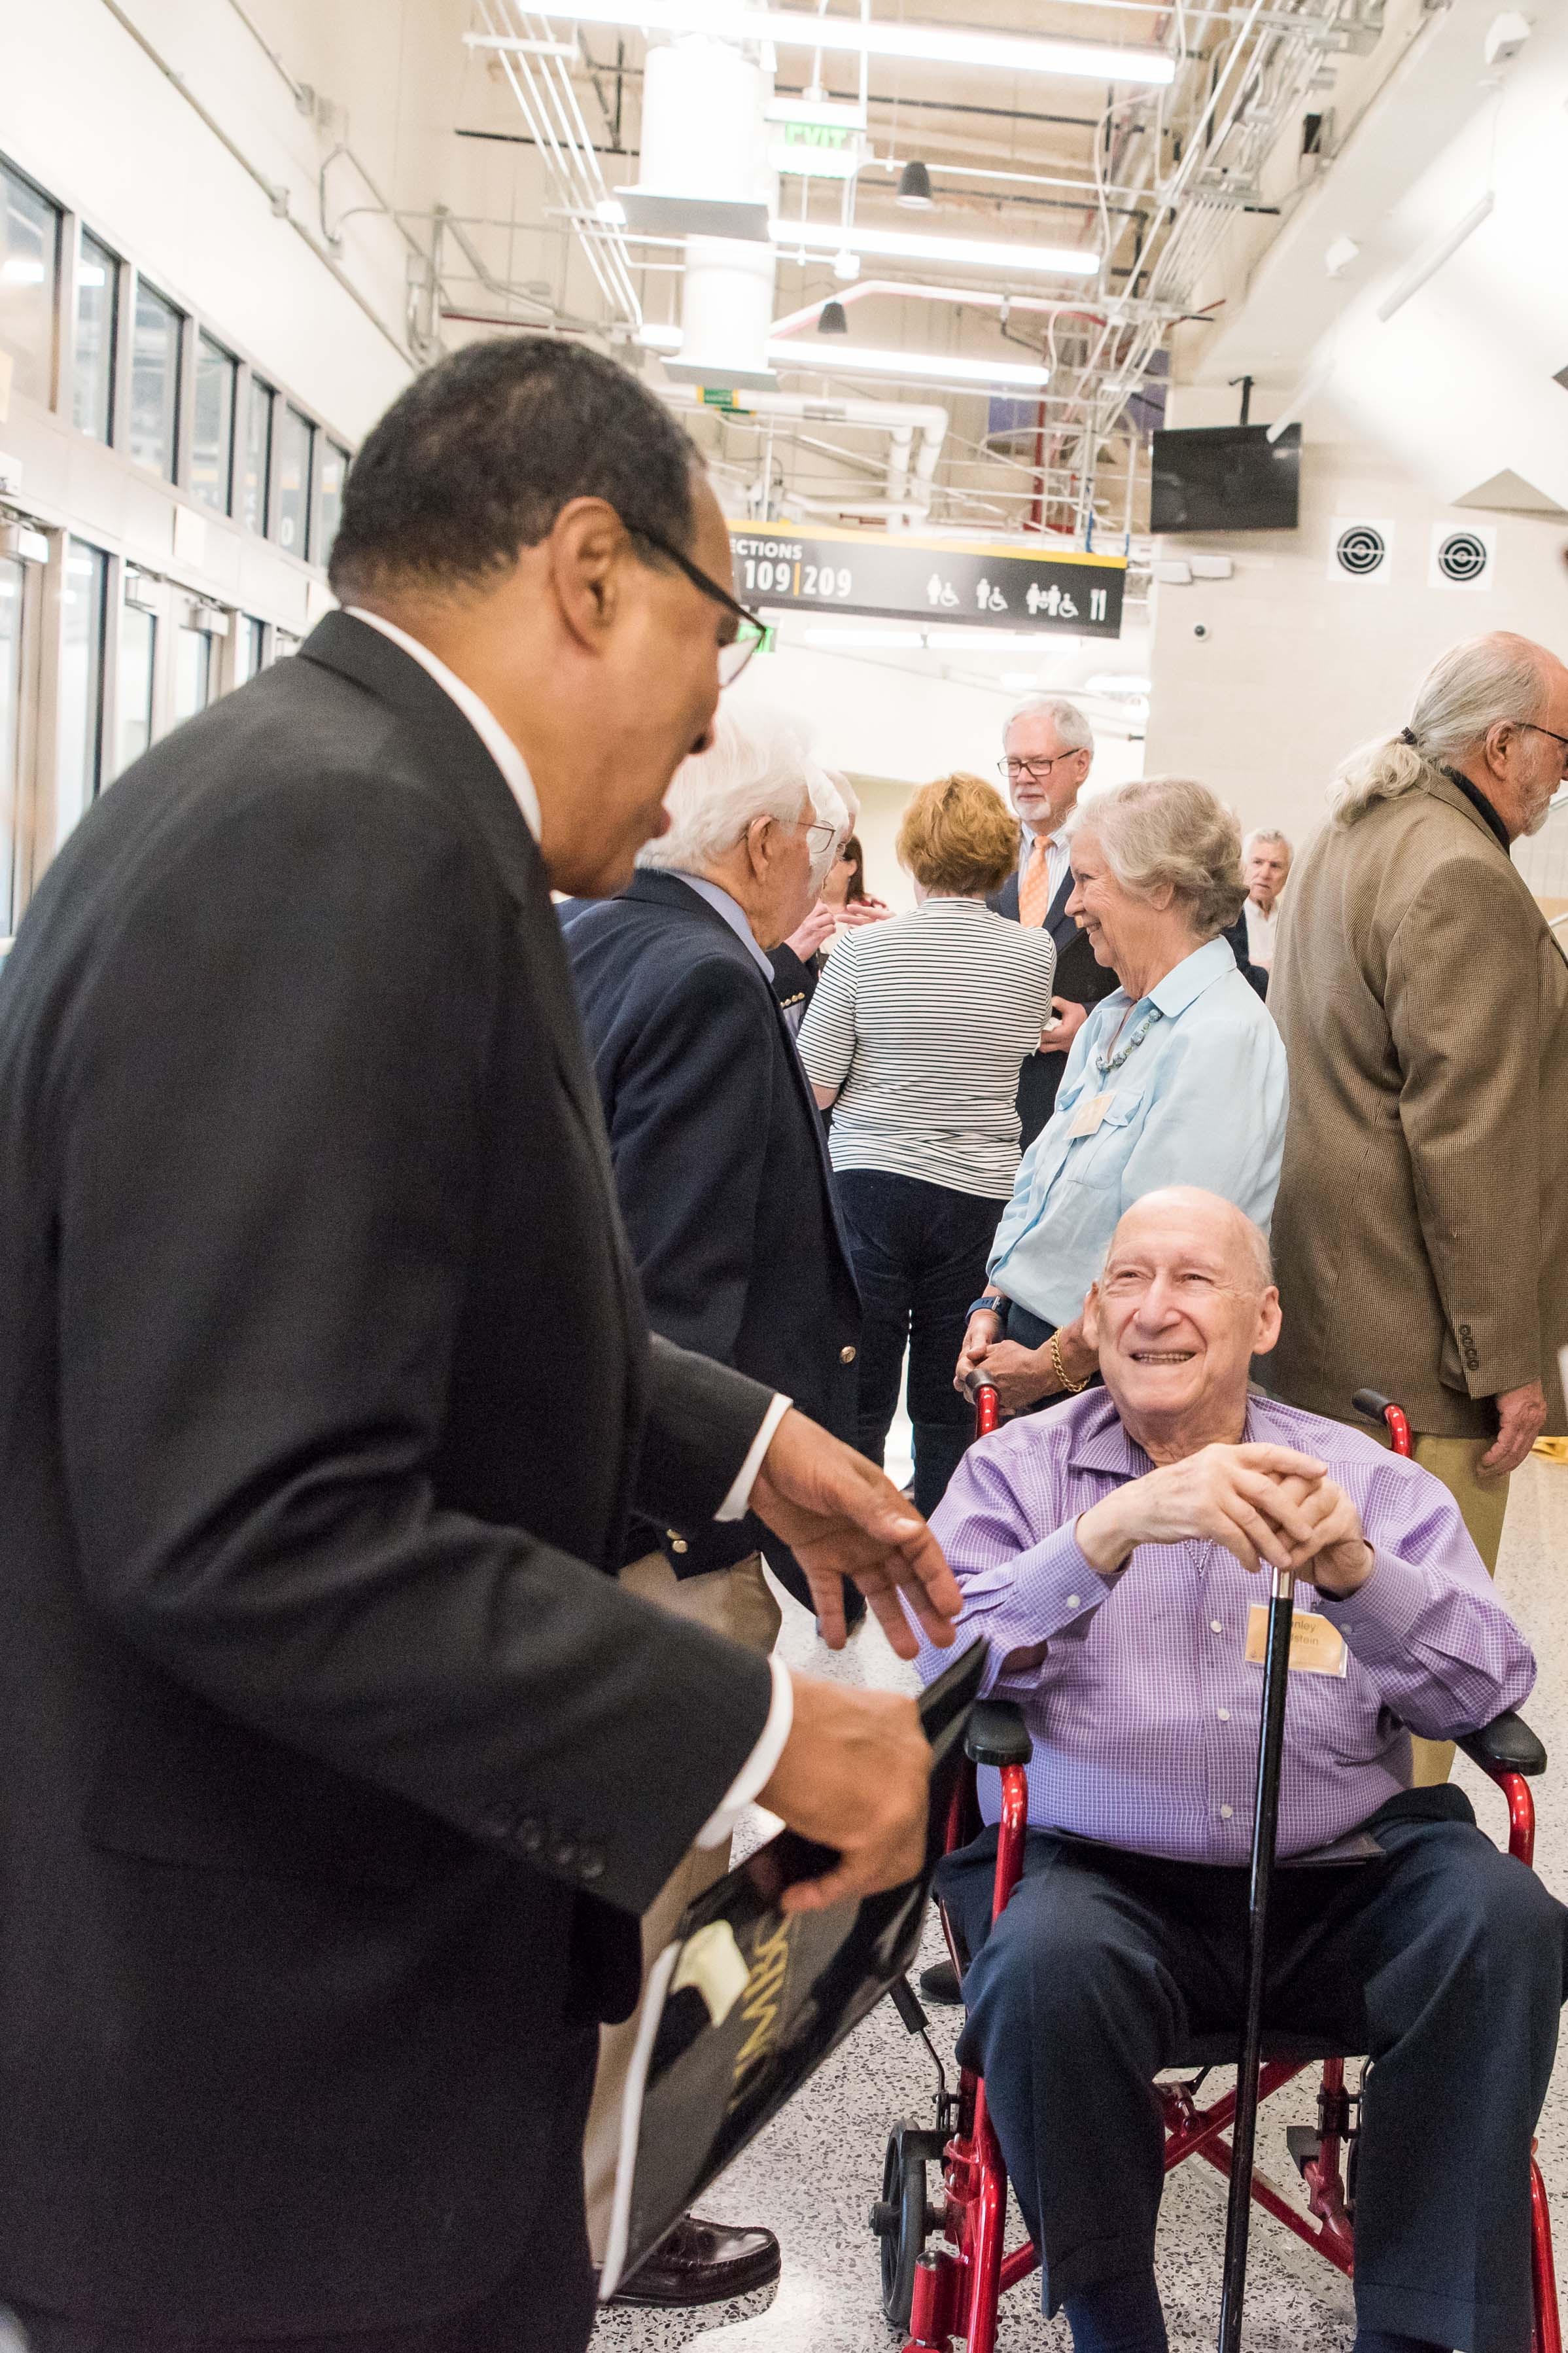 Hrabowski leans down to talk to man in wheel chair at Wisdom Institute lunch